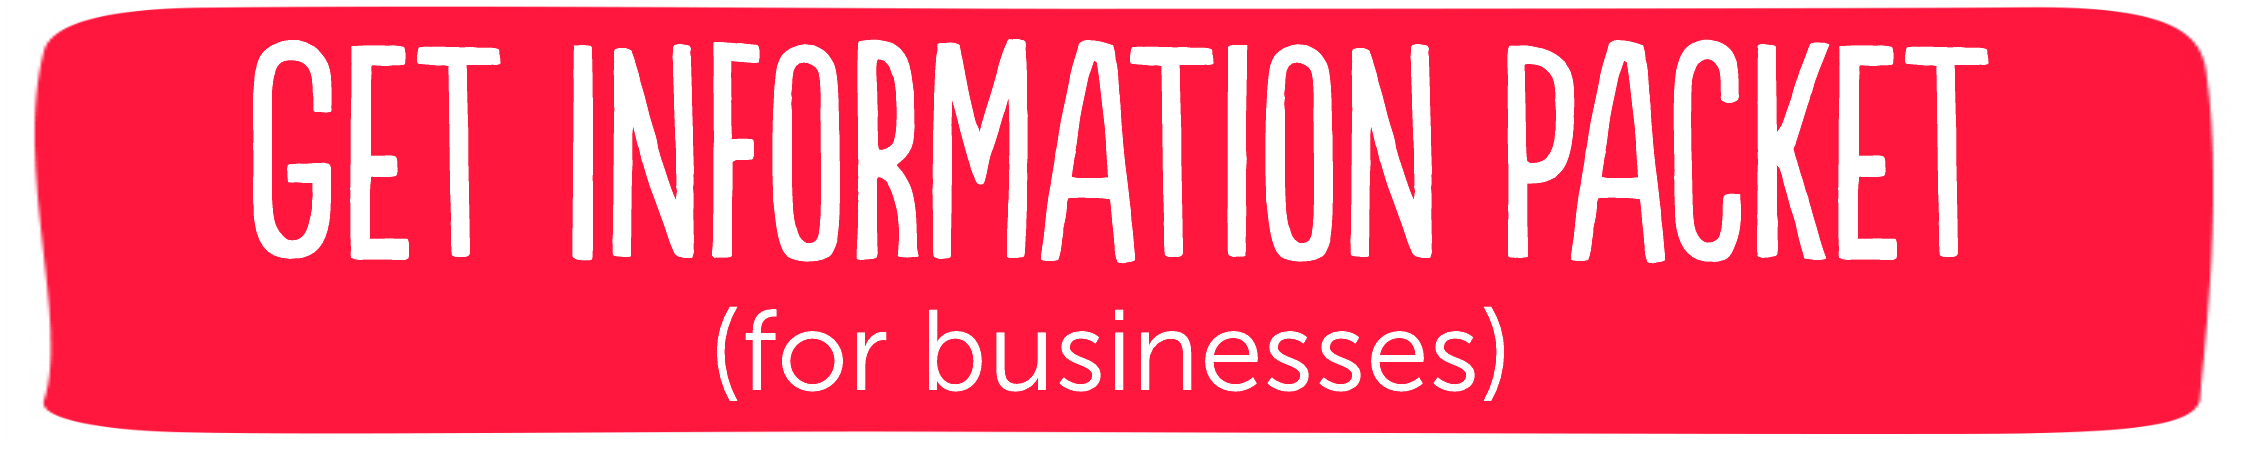 Get Information Packet (for businesses)